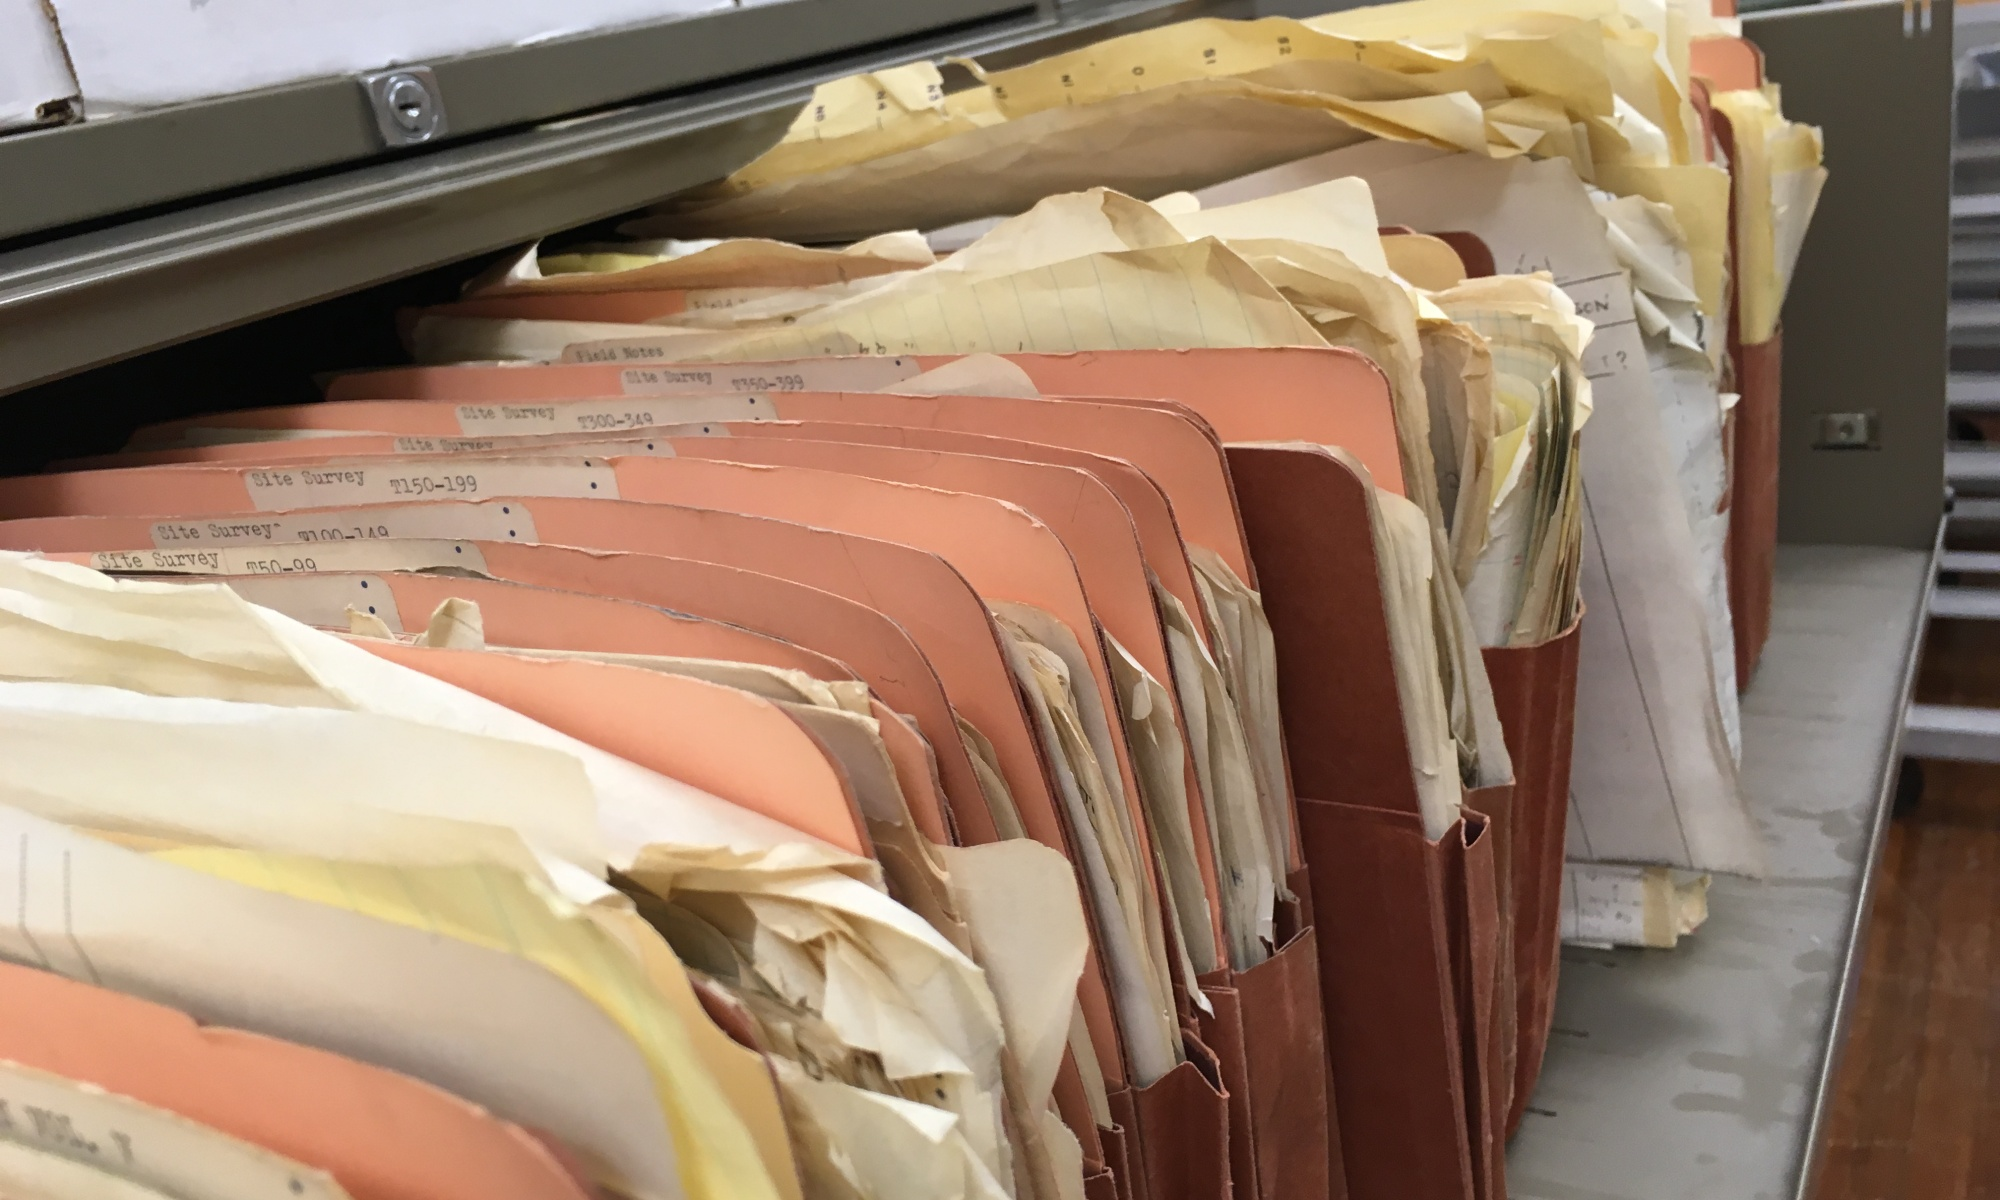 Folders full of Scotty MacNeish's Tehuacan survey records from the 1960s